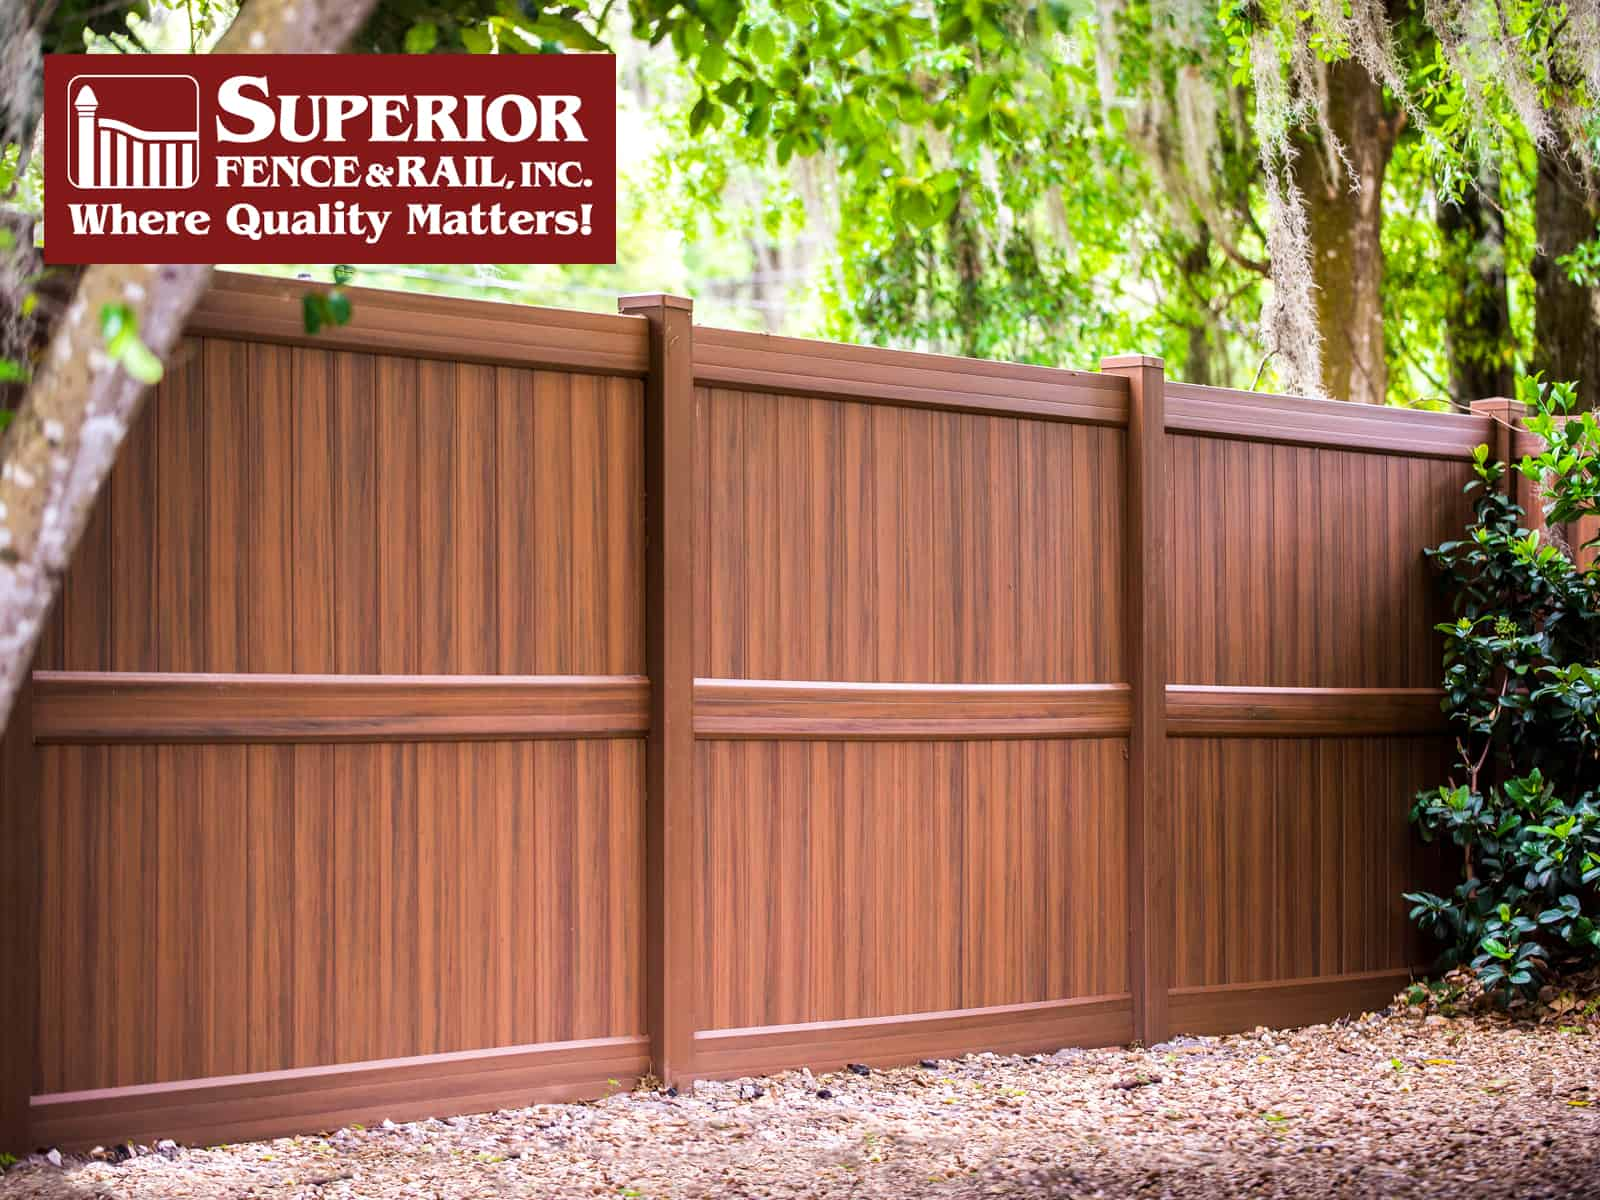 Golden fence company contractor